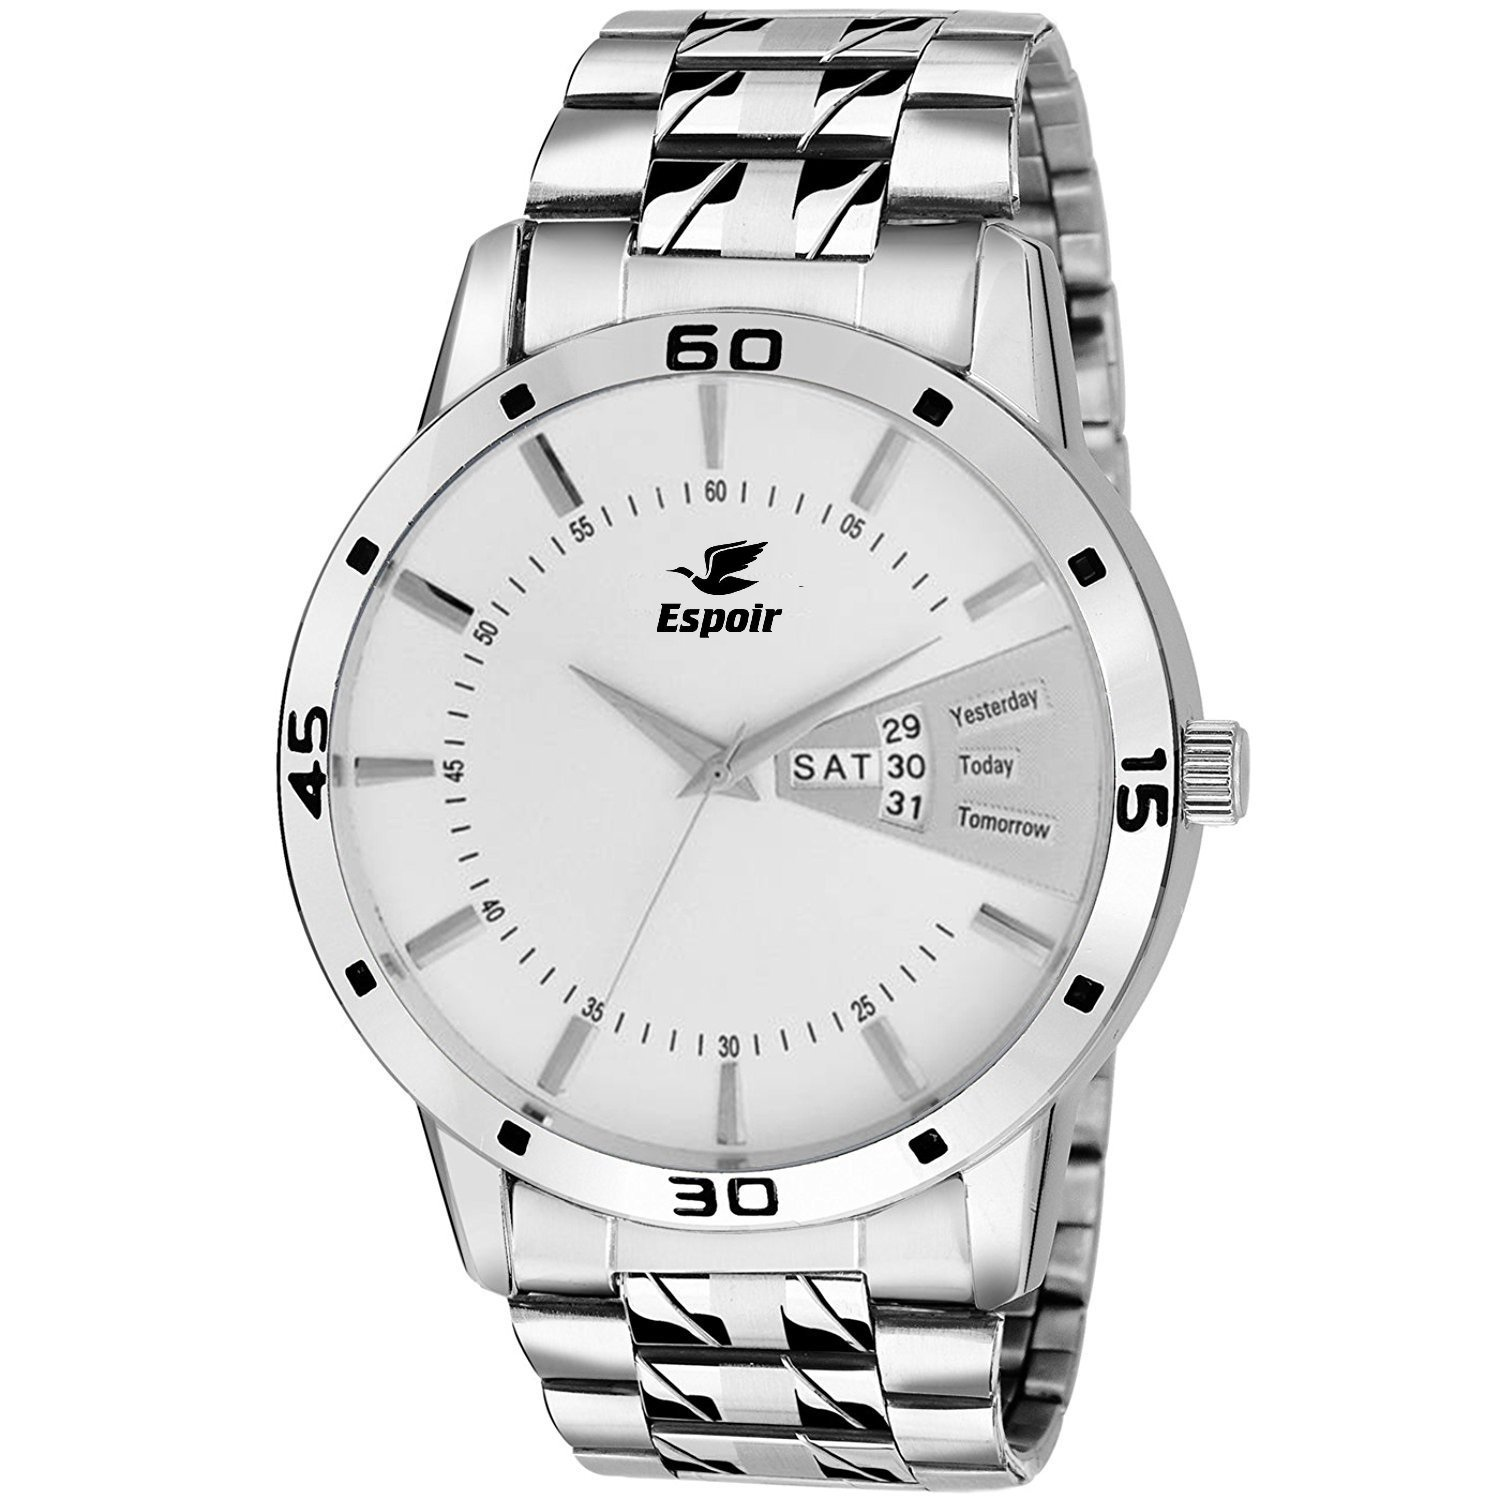 Espoir Analog White Day and Date Dial Men's Watch 2038 WH